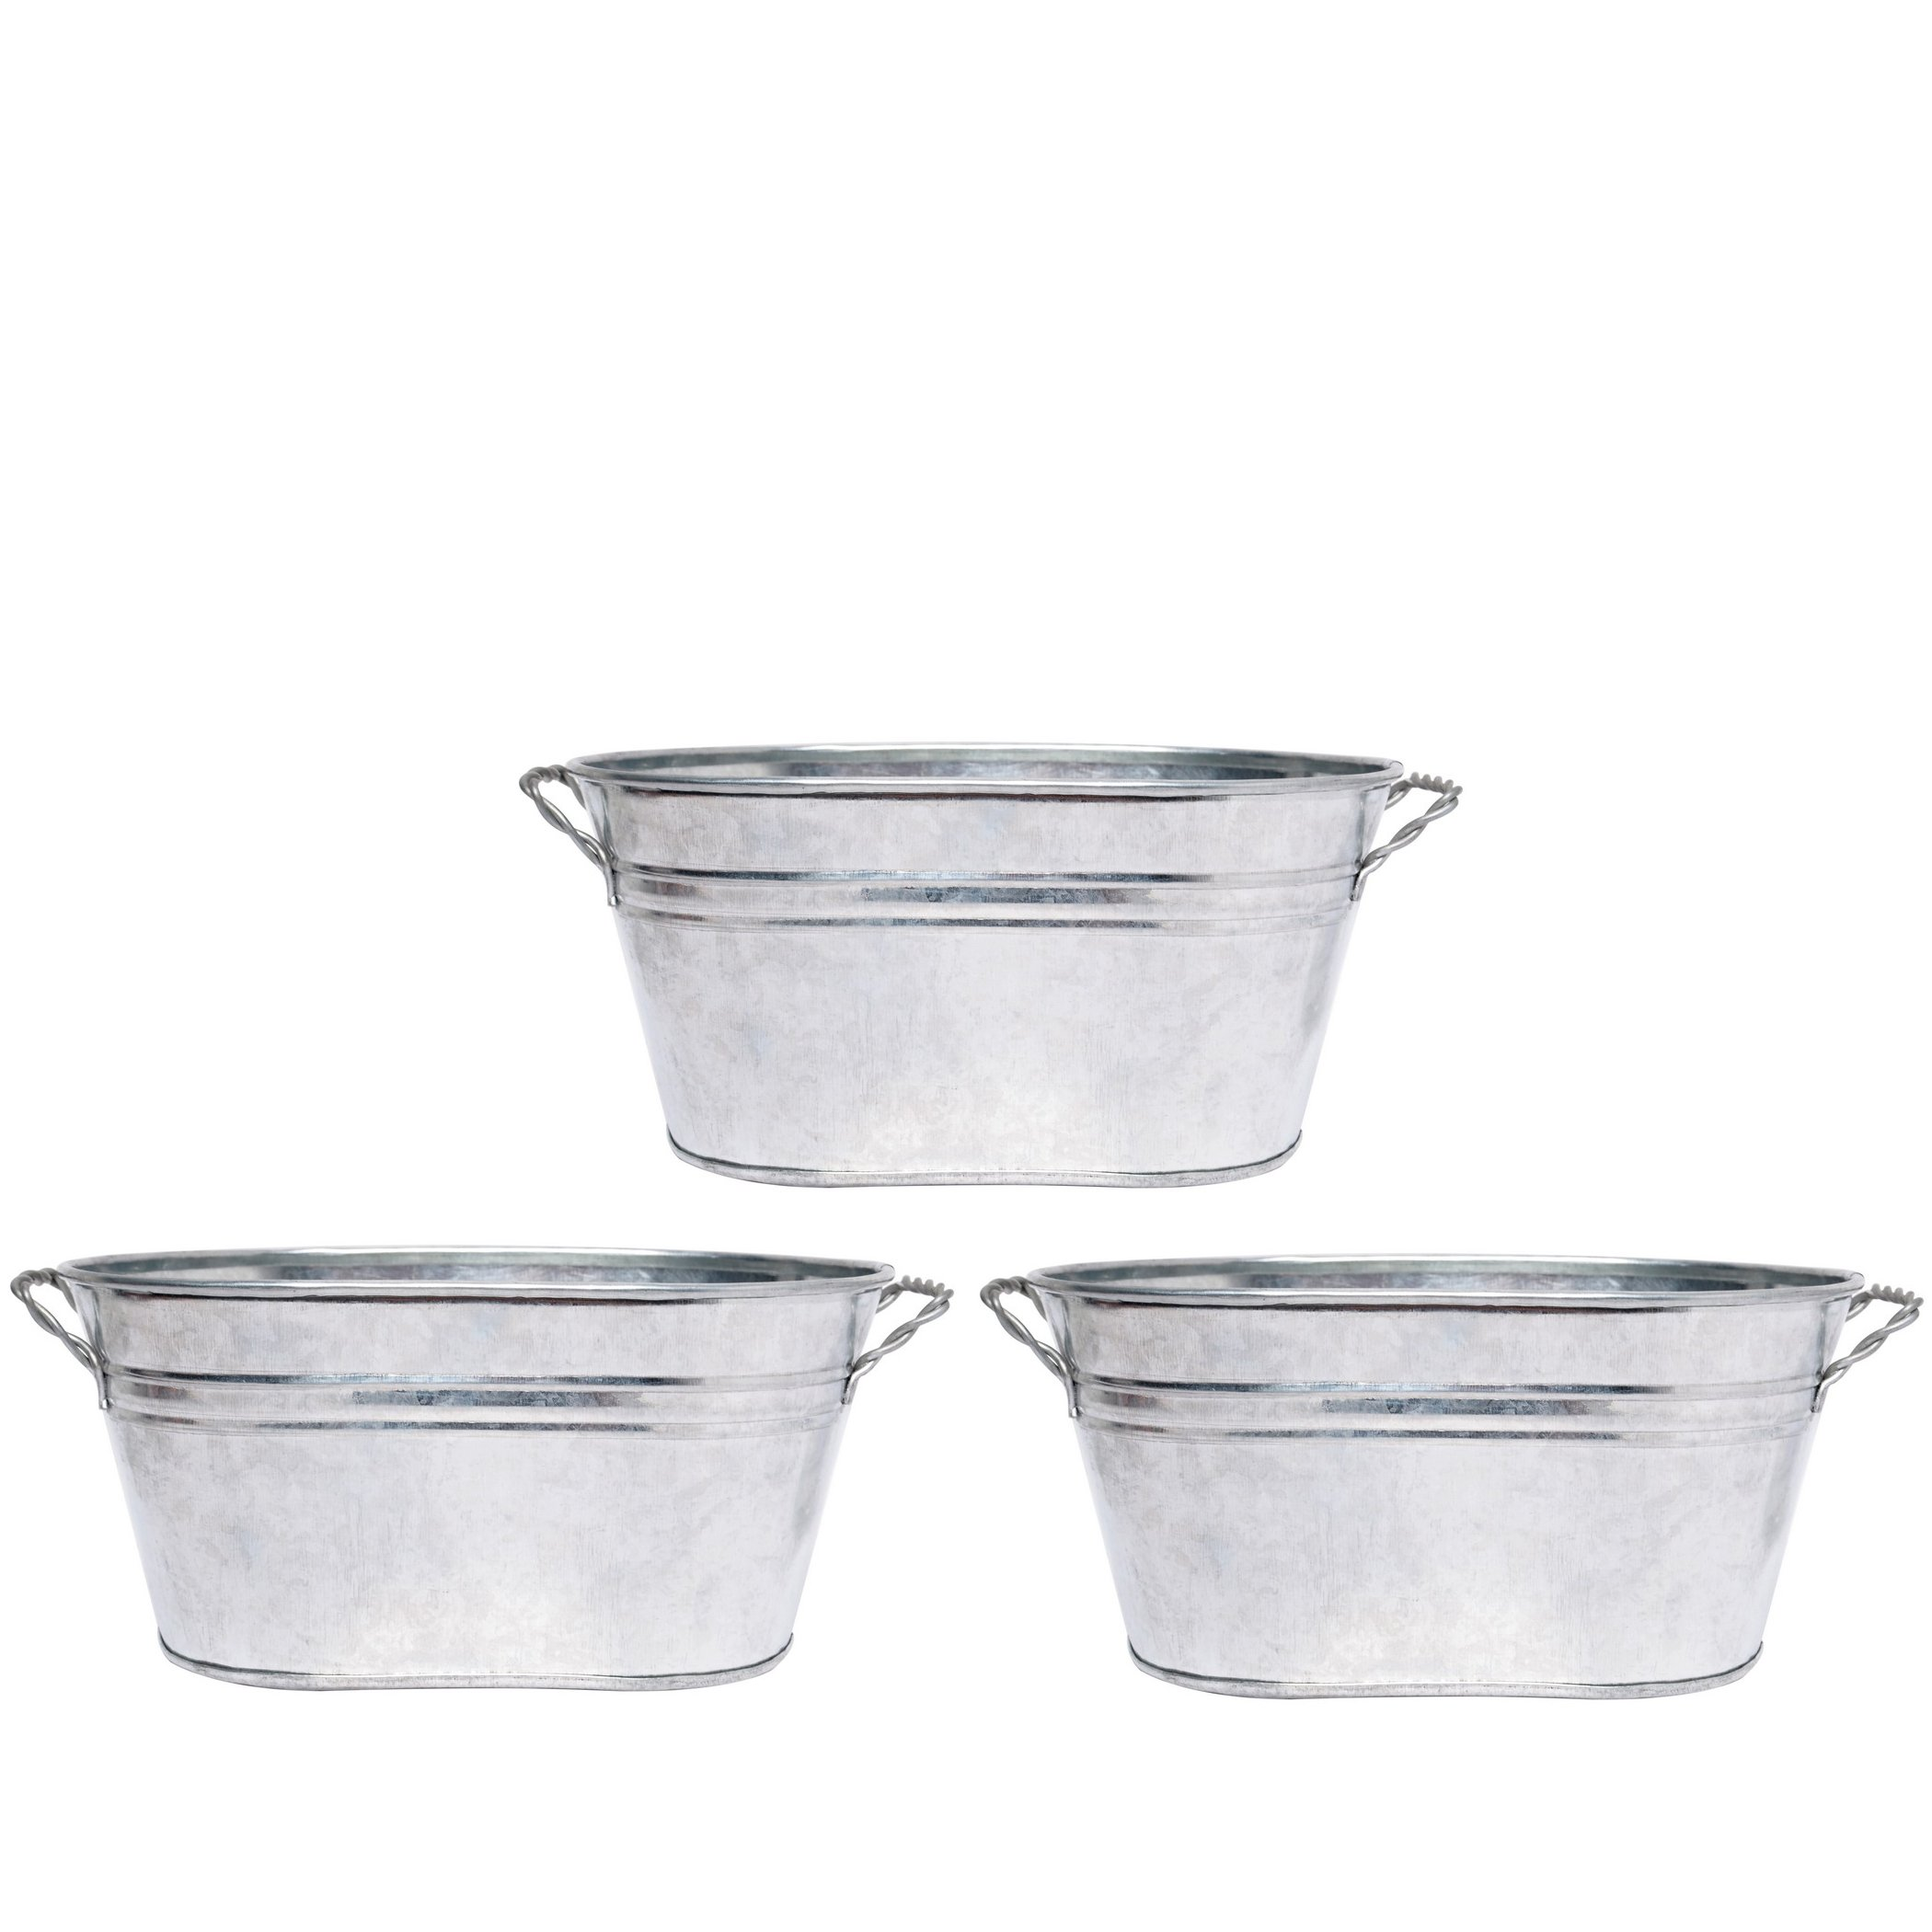 Hosley 3 Pack of Galvanized Oval Planters - 8'' Long. Ideal Gift and Use for Weddings, Special Events, Parties, Outside Planters. W9 by Hosley